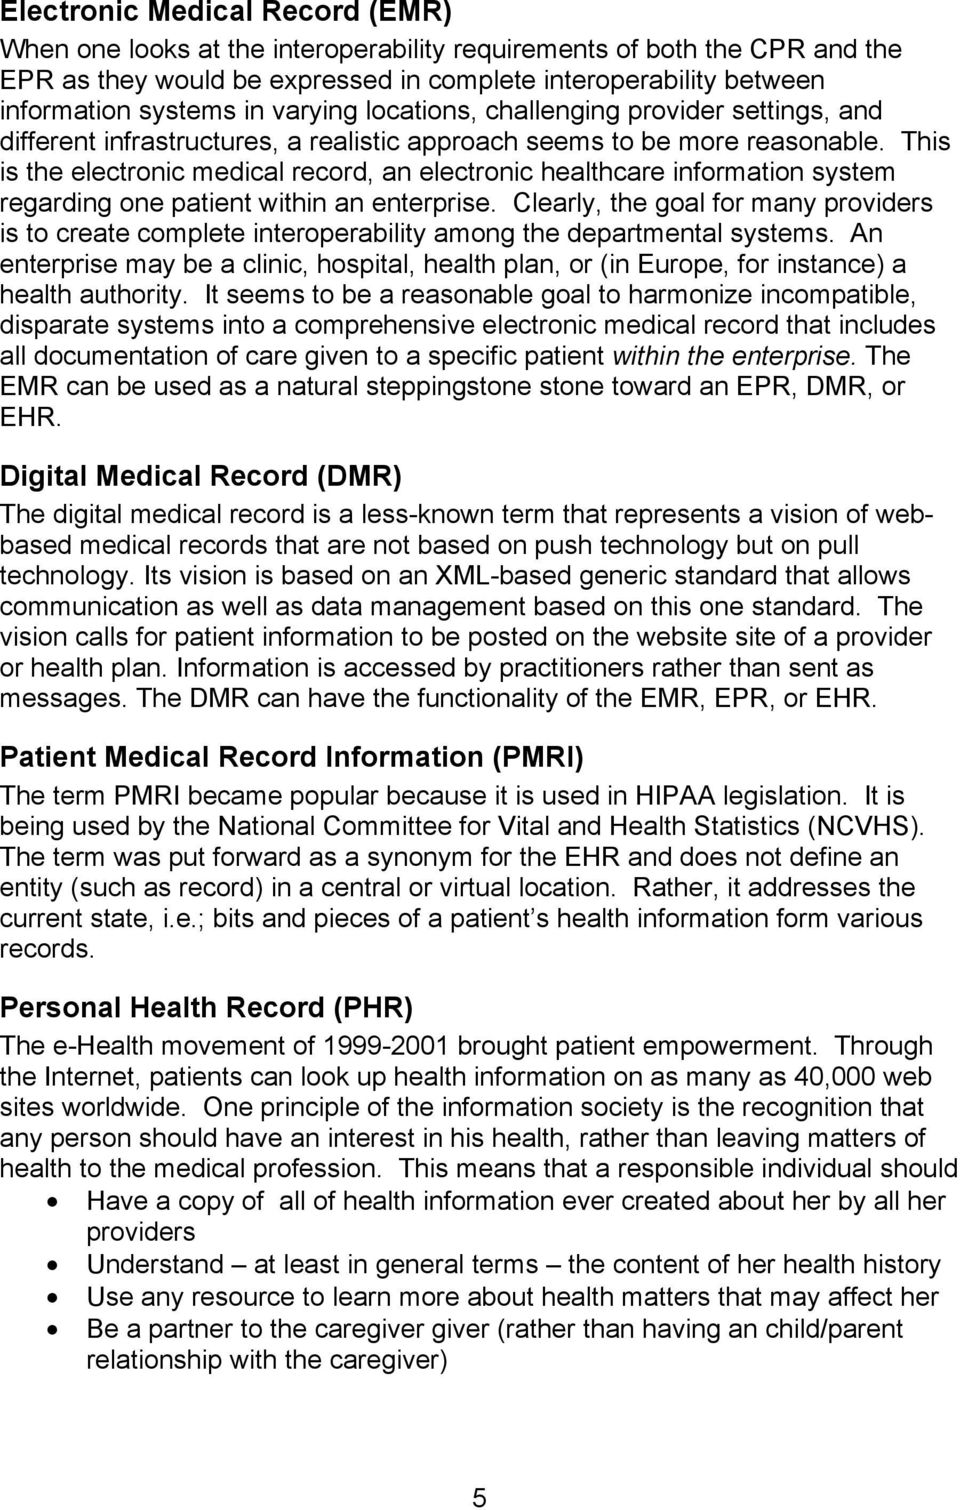 This is the electronic medical record, an electronic healthcare information system regarding one patient within an enterprise.